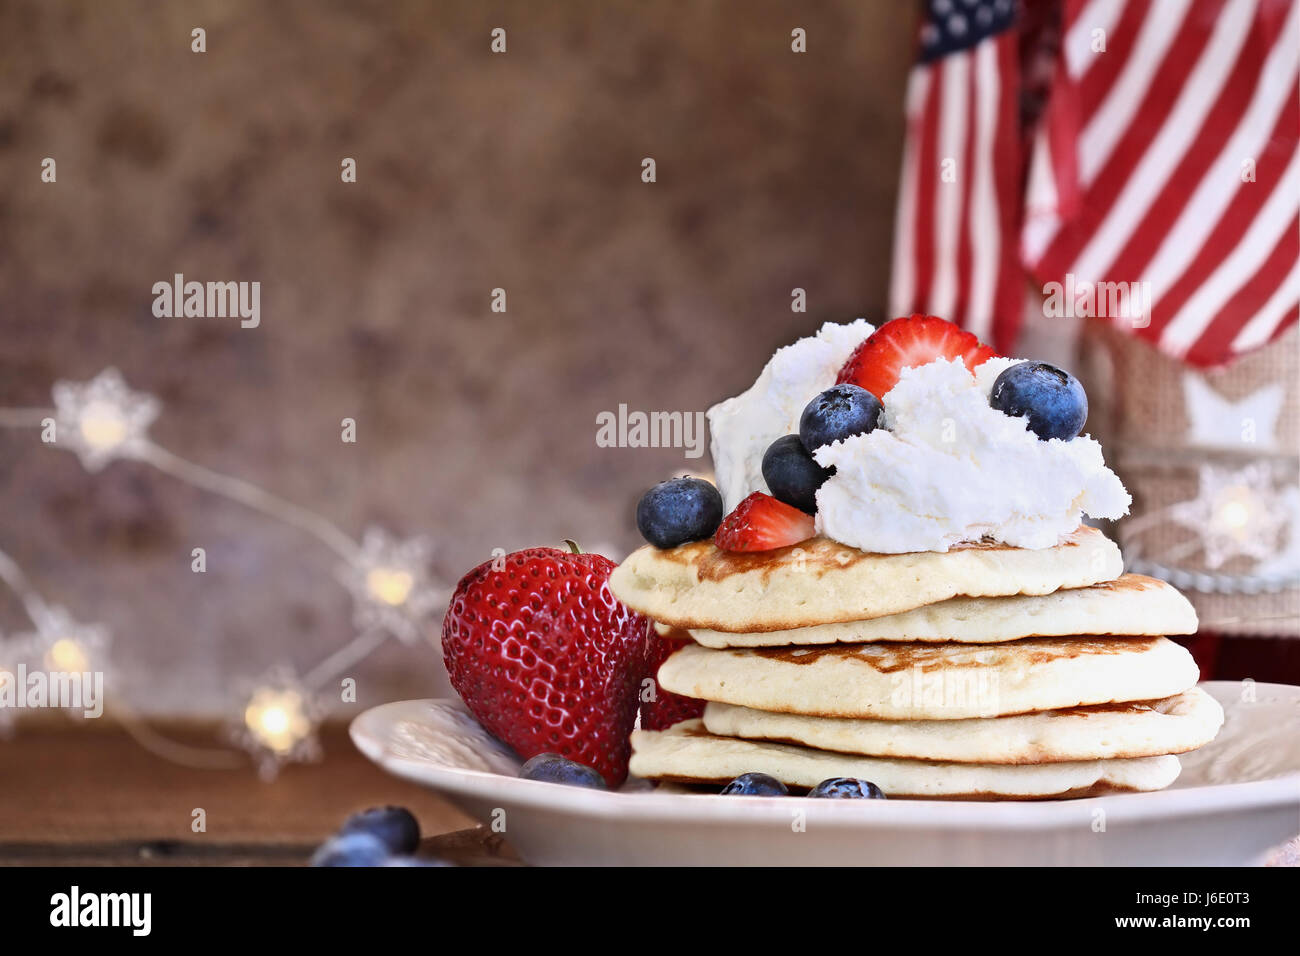 Pancakes served with blueberries, strawberries, and whipped cream against a rustic background. Perfect for fourth - Stock Image